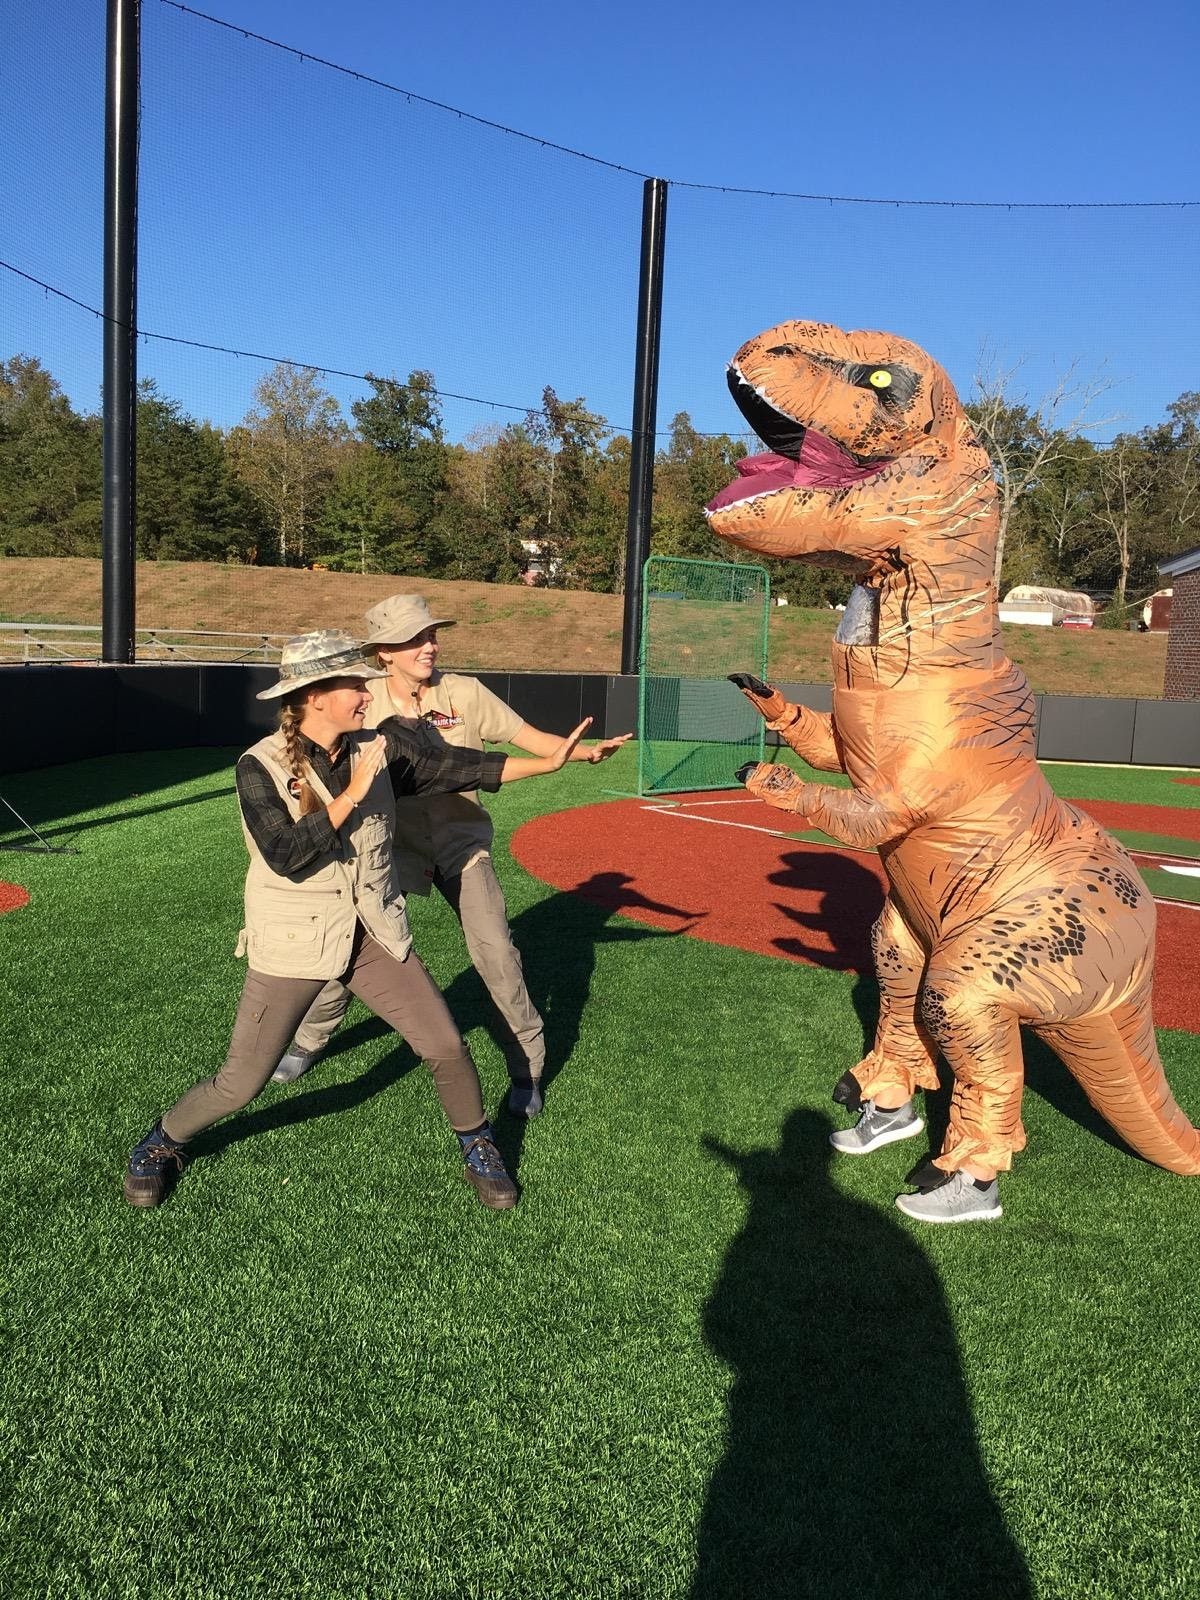 Freshmen Darbi Holmes and Taylor Koon get ready to fight freshman Jalein Griffin after discovering the horrifying T-Rex.